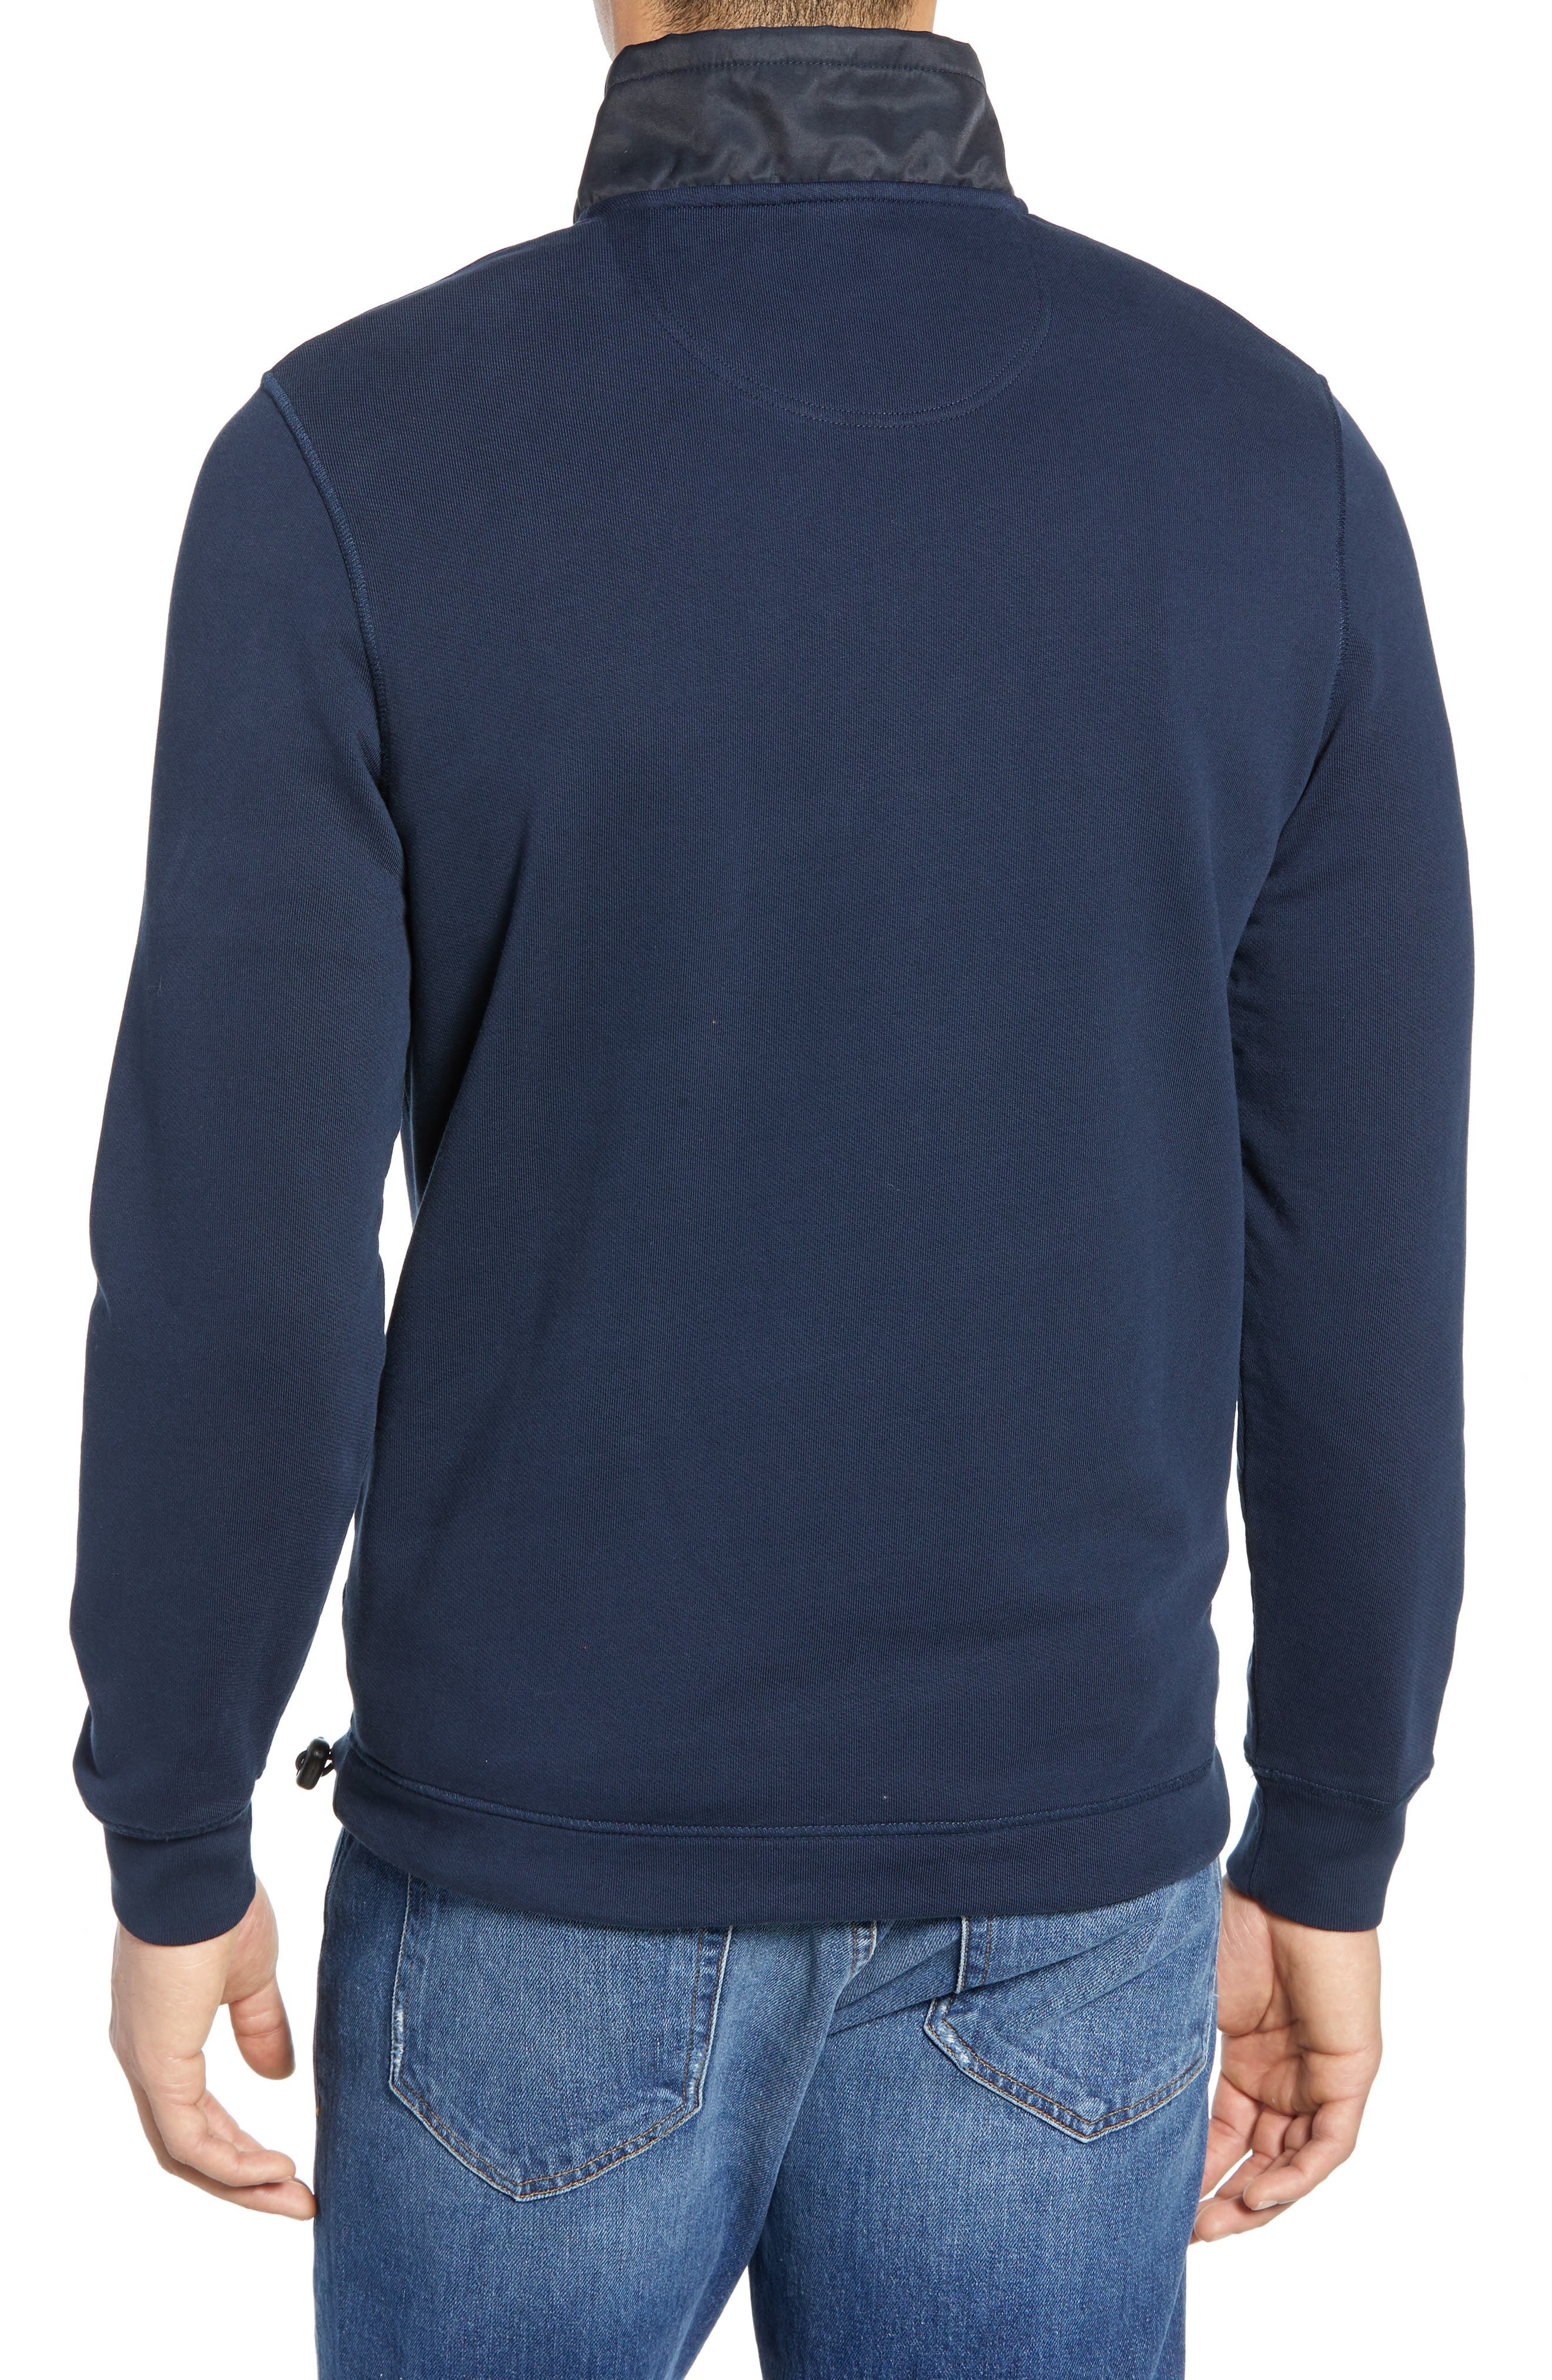 BARBOUR, Seward Half Zip Pullover, Alternate thumbnail 2, color, NAVY